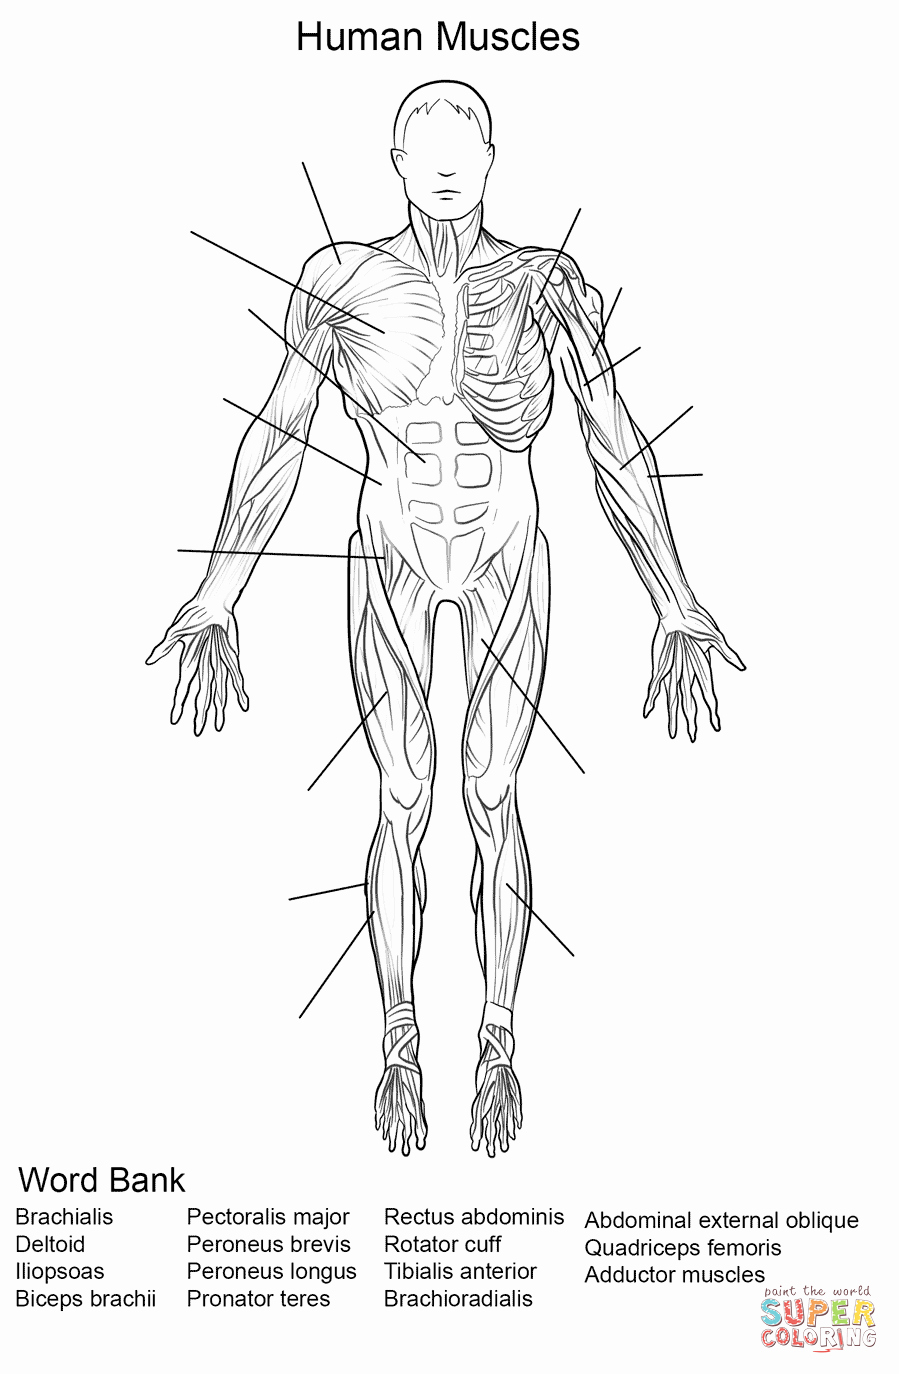 Muscle Diagram Worksheets Lovely Human Muscles Front View Worksheet Coloring Page